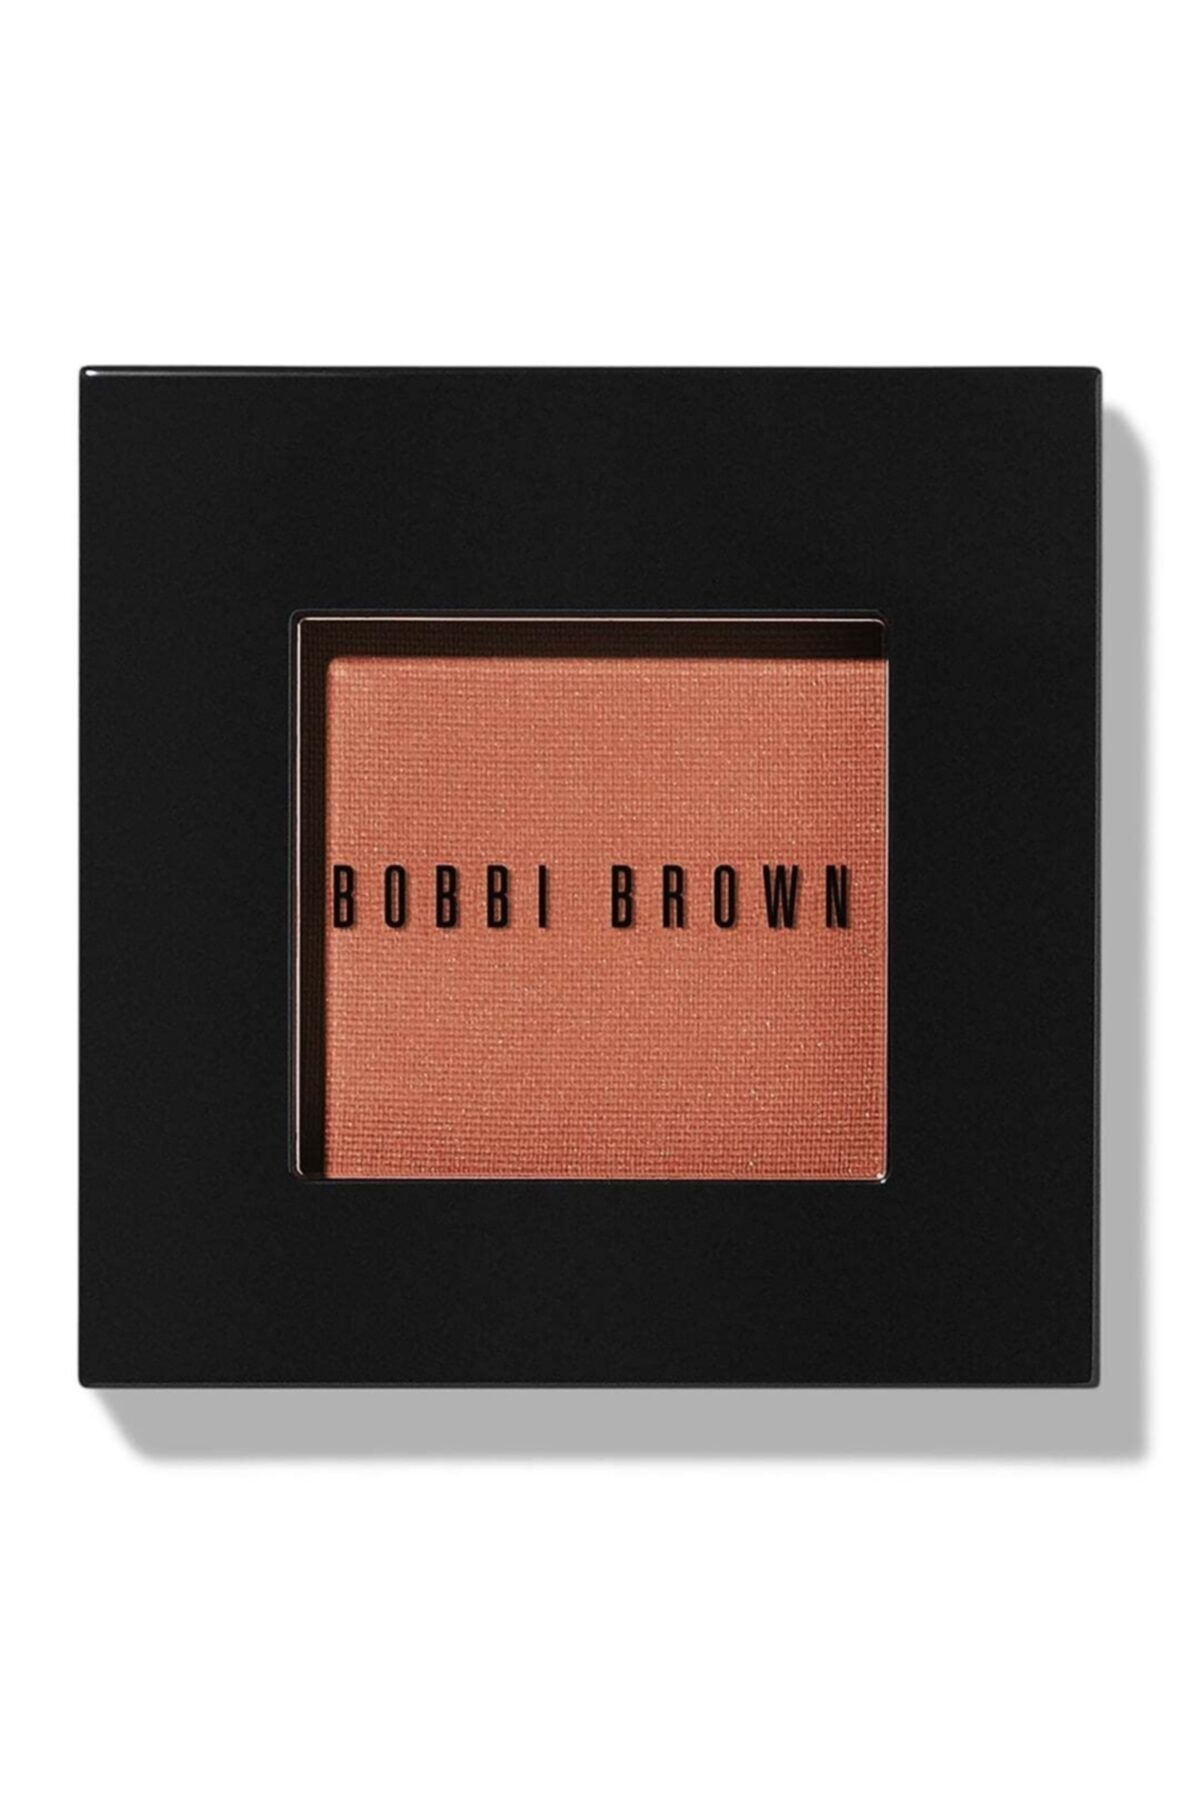 BOBBI BROWN Blush / Allık .13 Oz. / 3.7g New Clementine 716170144818 1